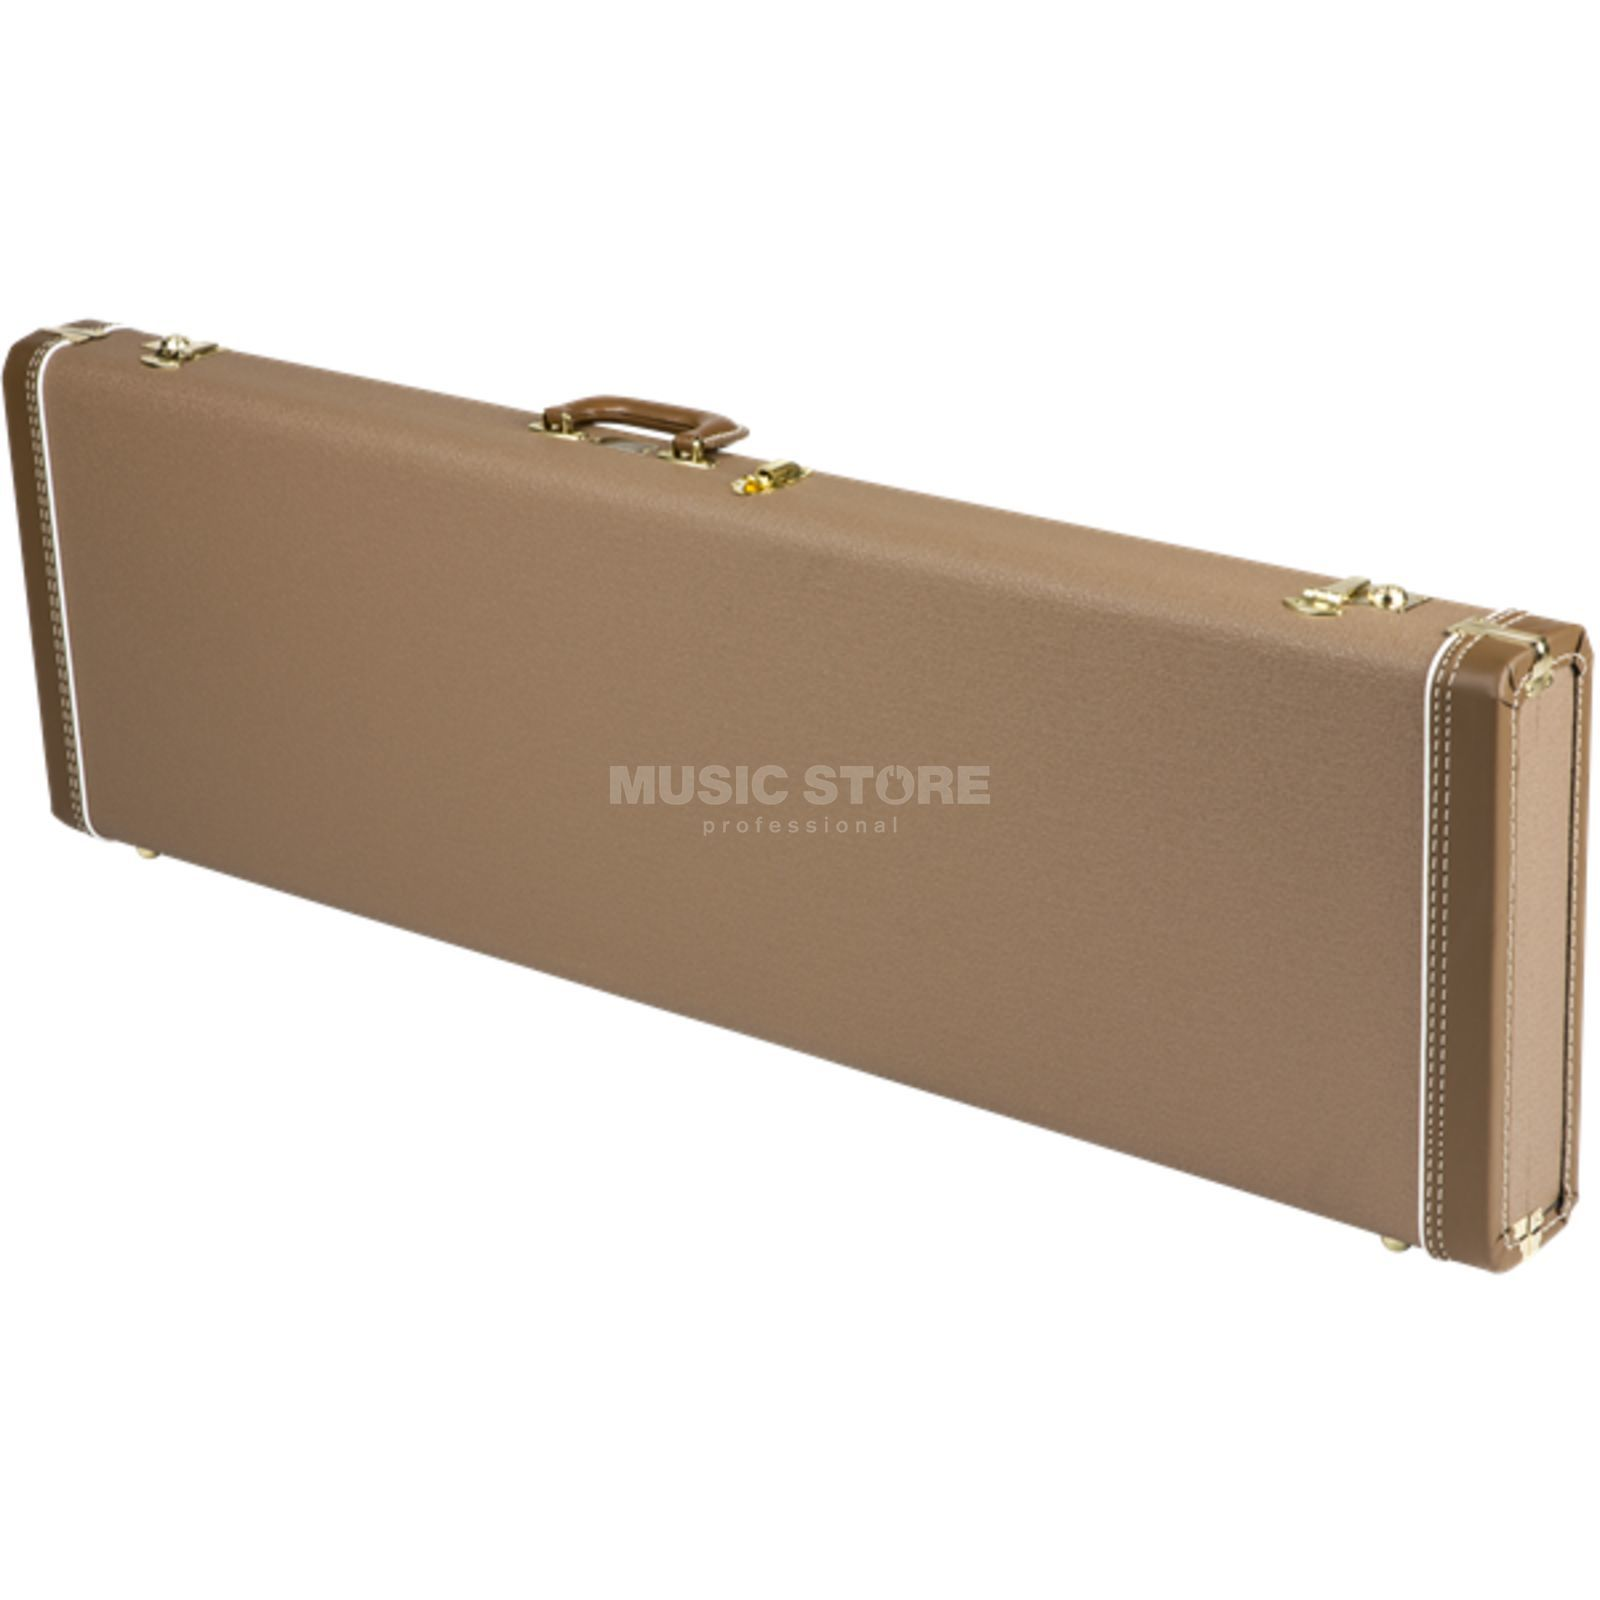 Fender Case MultiFit Hardshell P-Bass Brown with Gold Plush Product Image